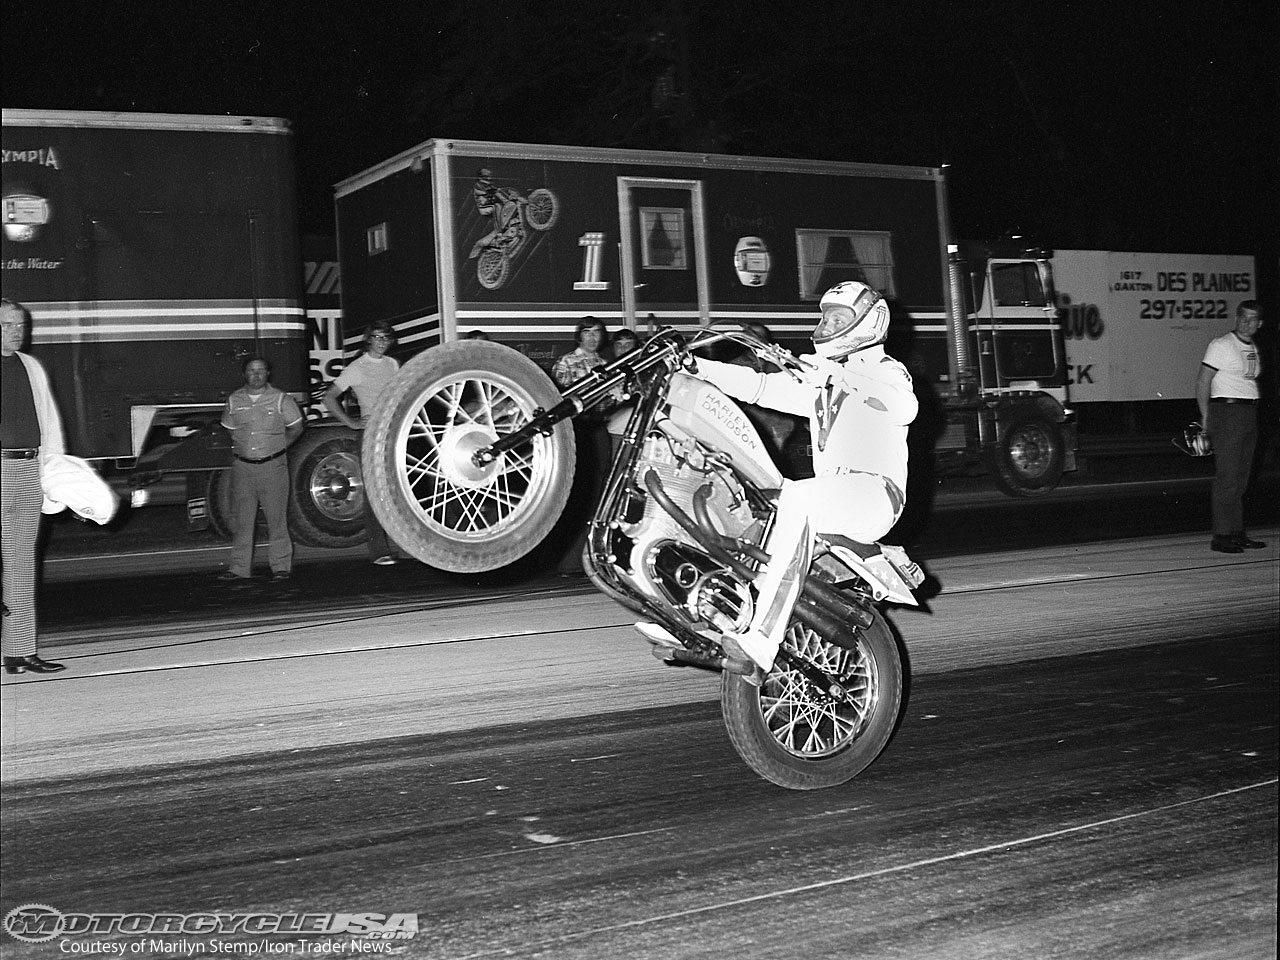 1280x960 - Evel Knievel Wallpapers 24